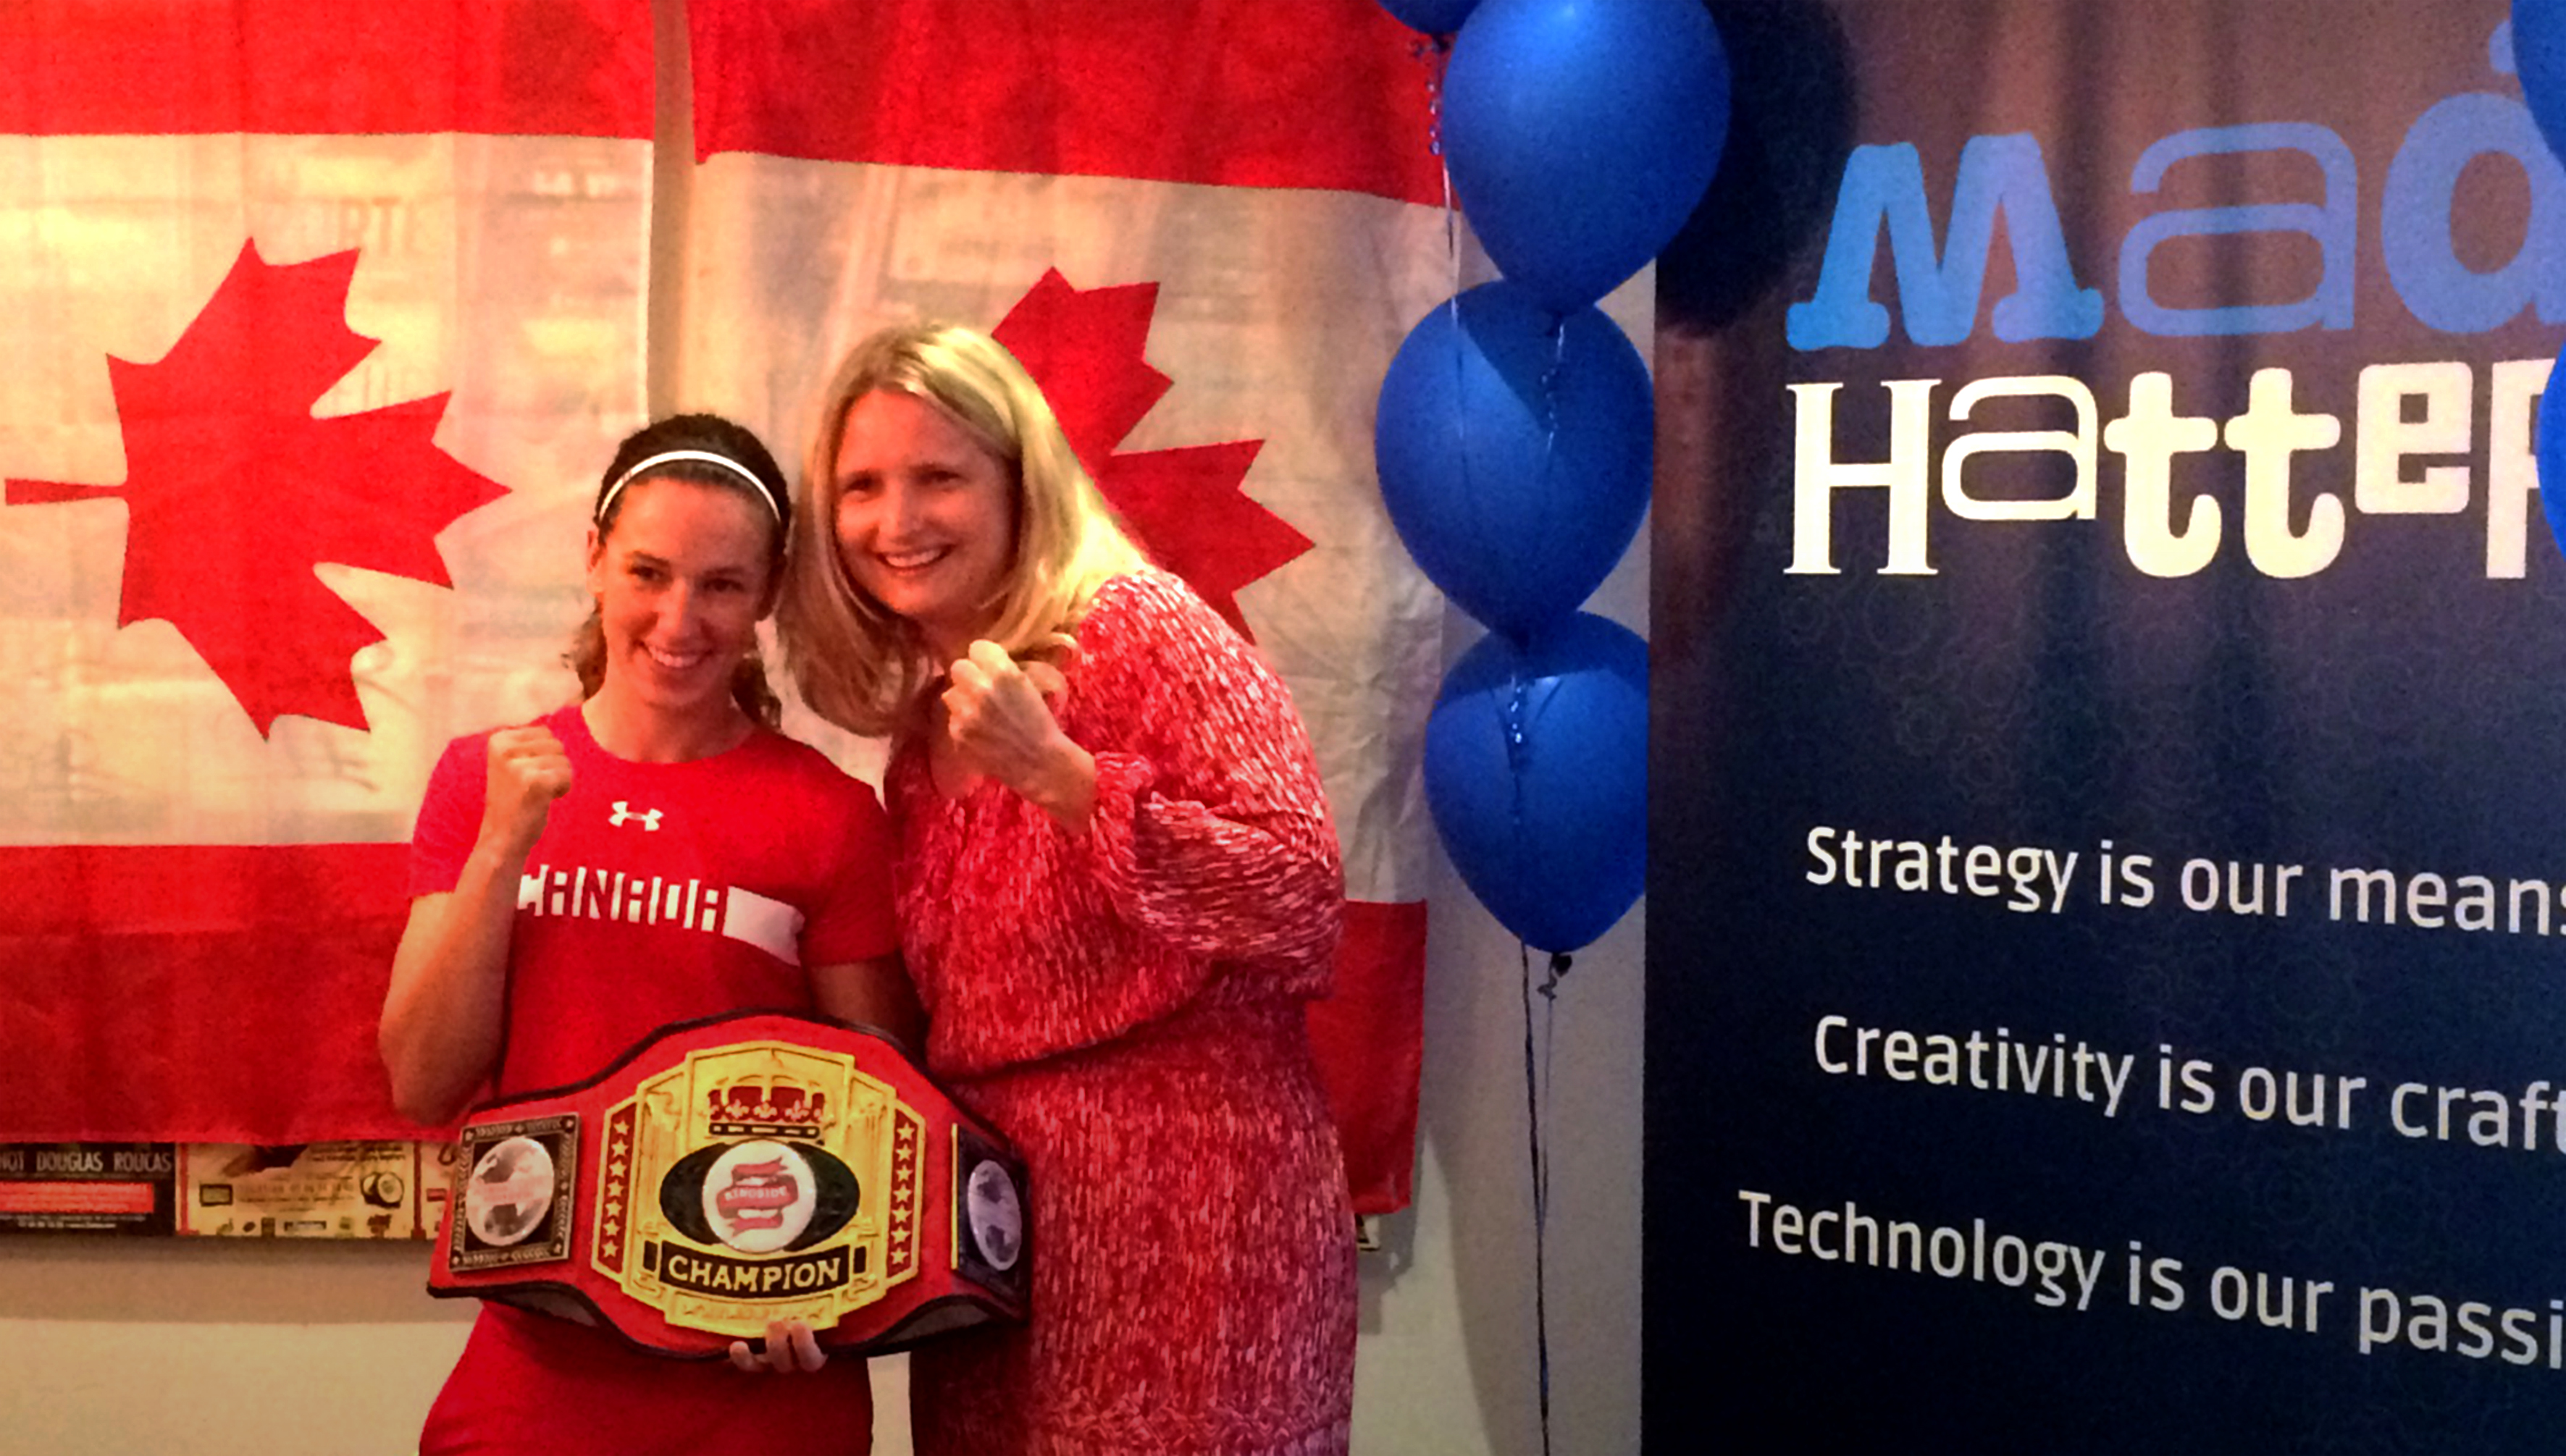 Boxer Mandy Bujold and Melanie Witzell, Agency Director, Mad Hatter Technology at a send off for Mandy at the Mad Hatter Technology office.